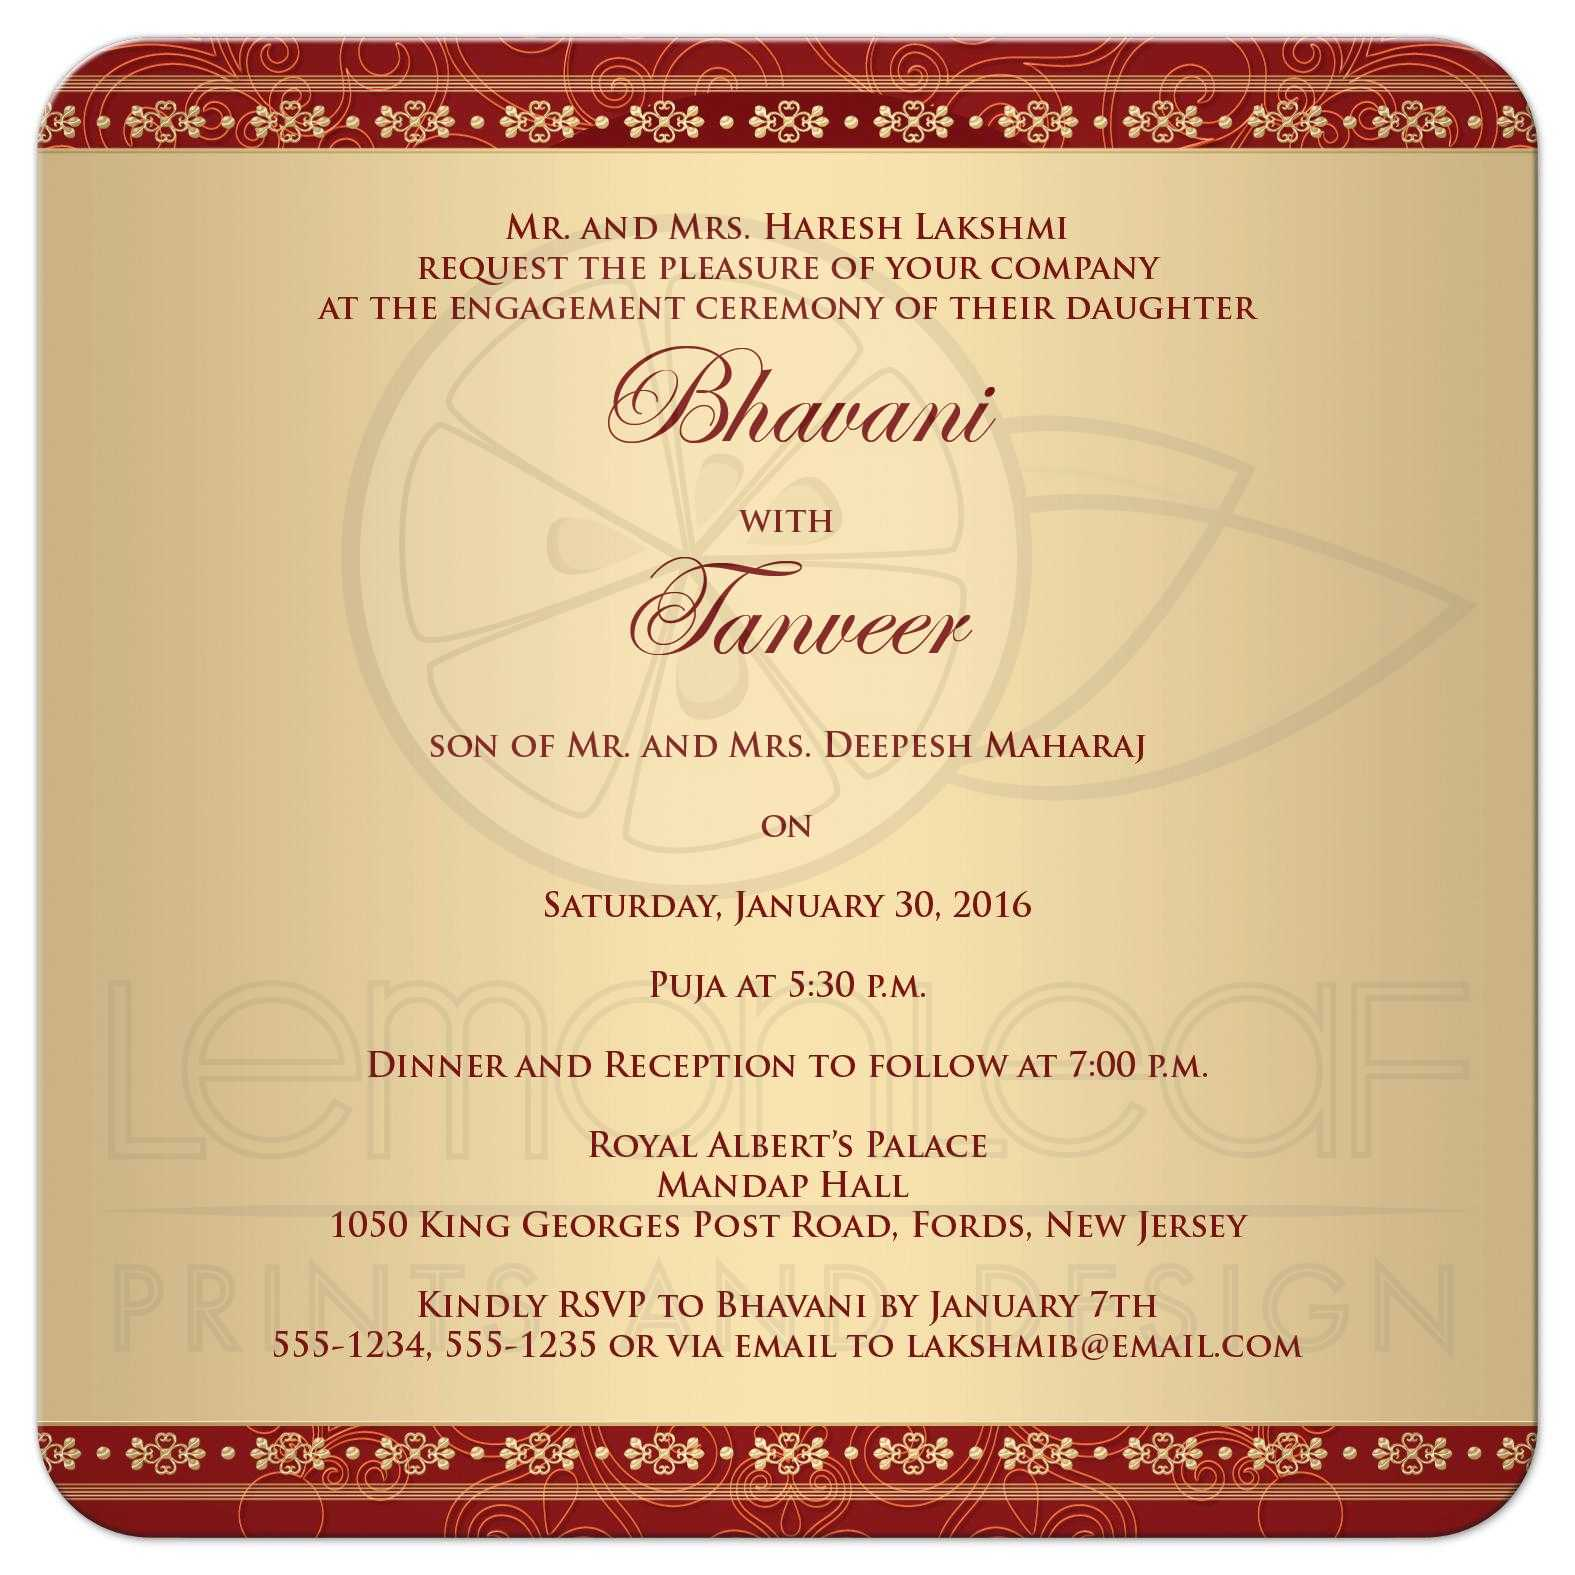 Engagement Party Invitation | Hindu Ganesh Red, Gold ...